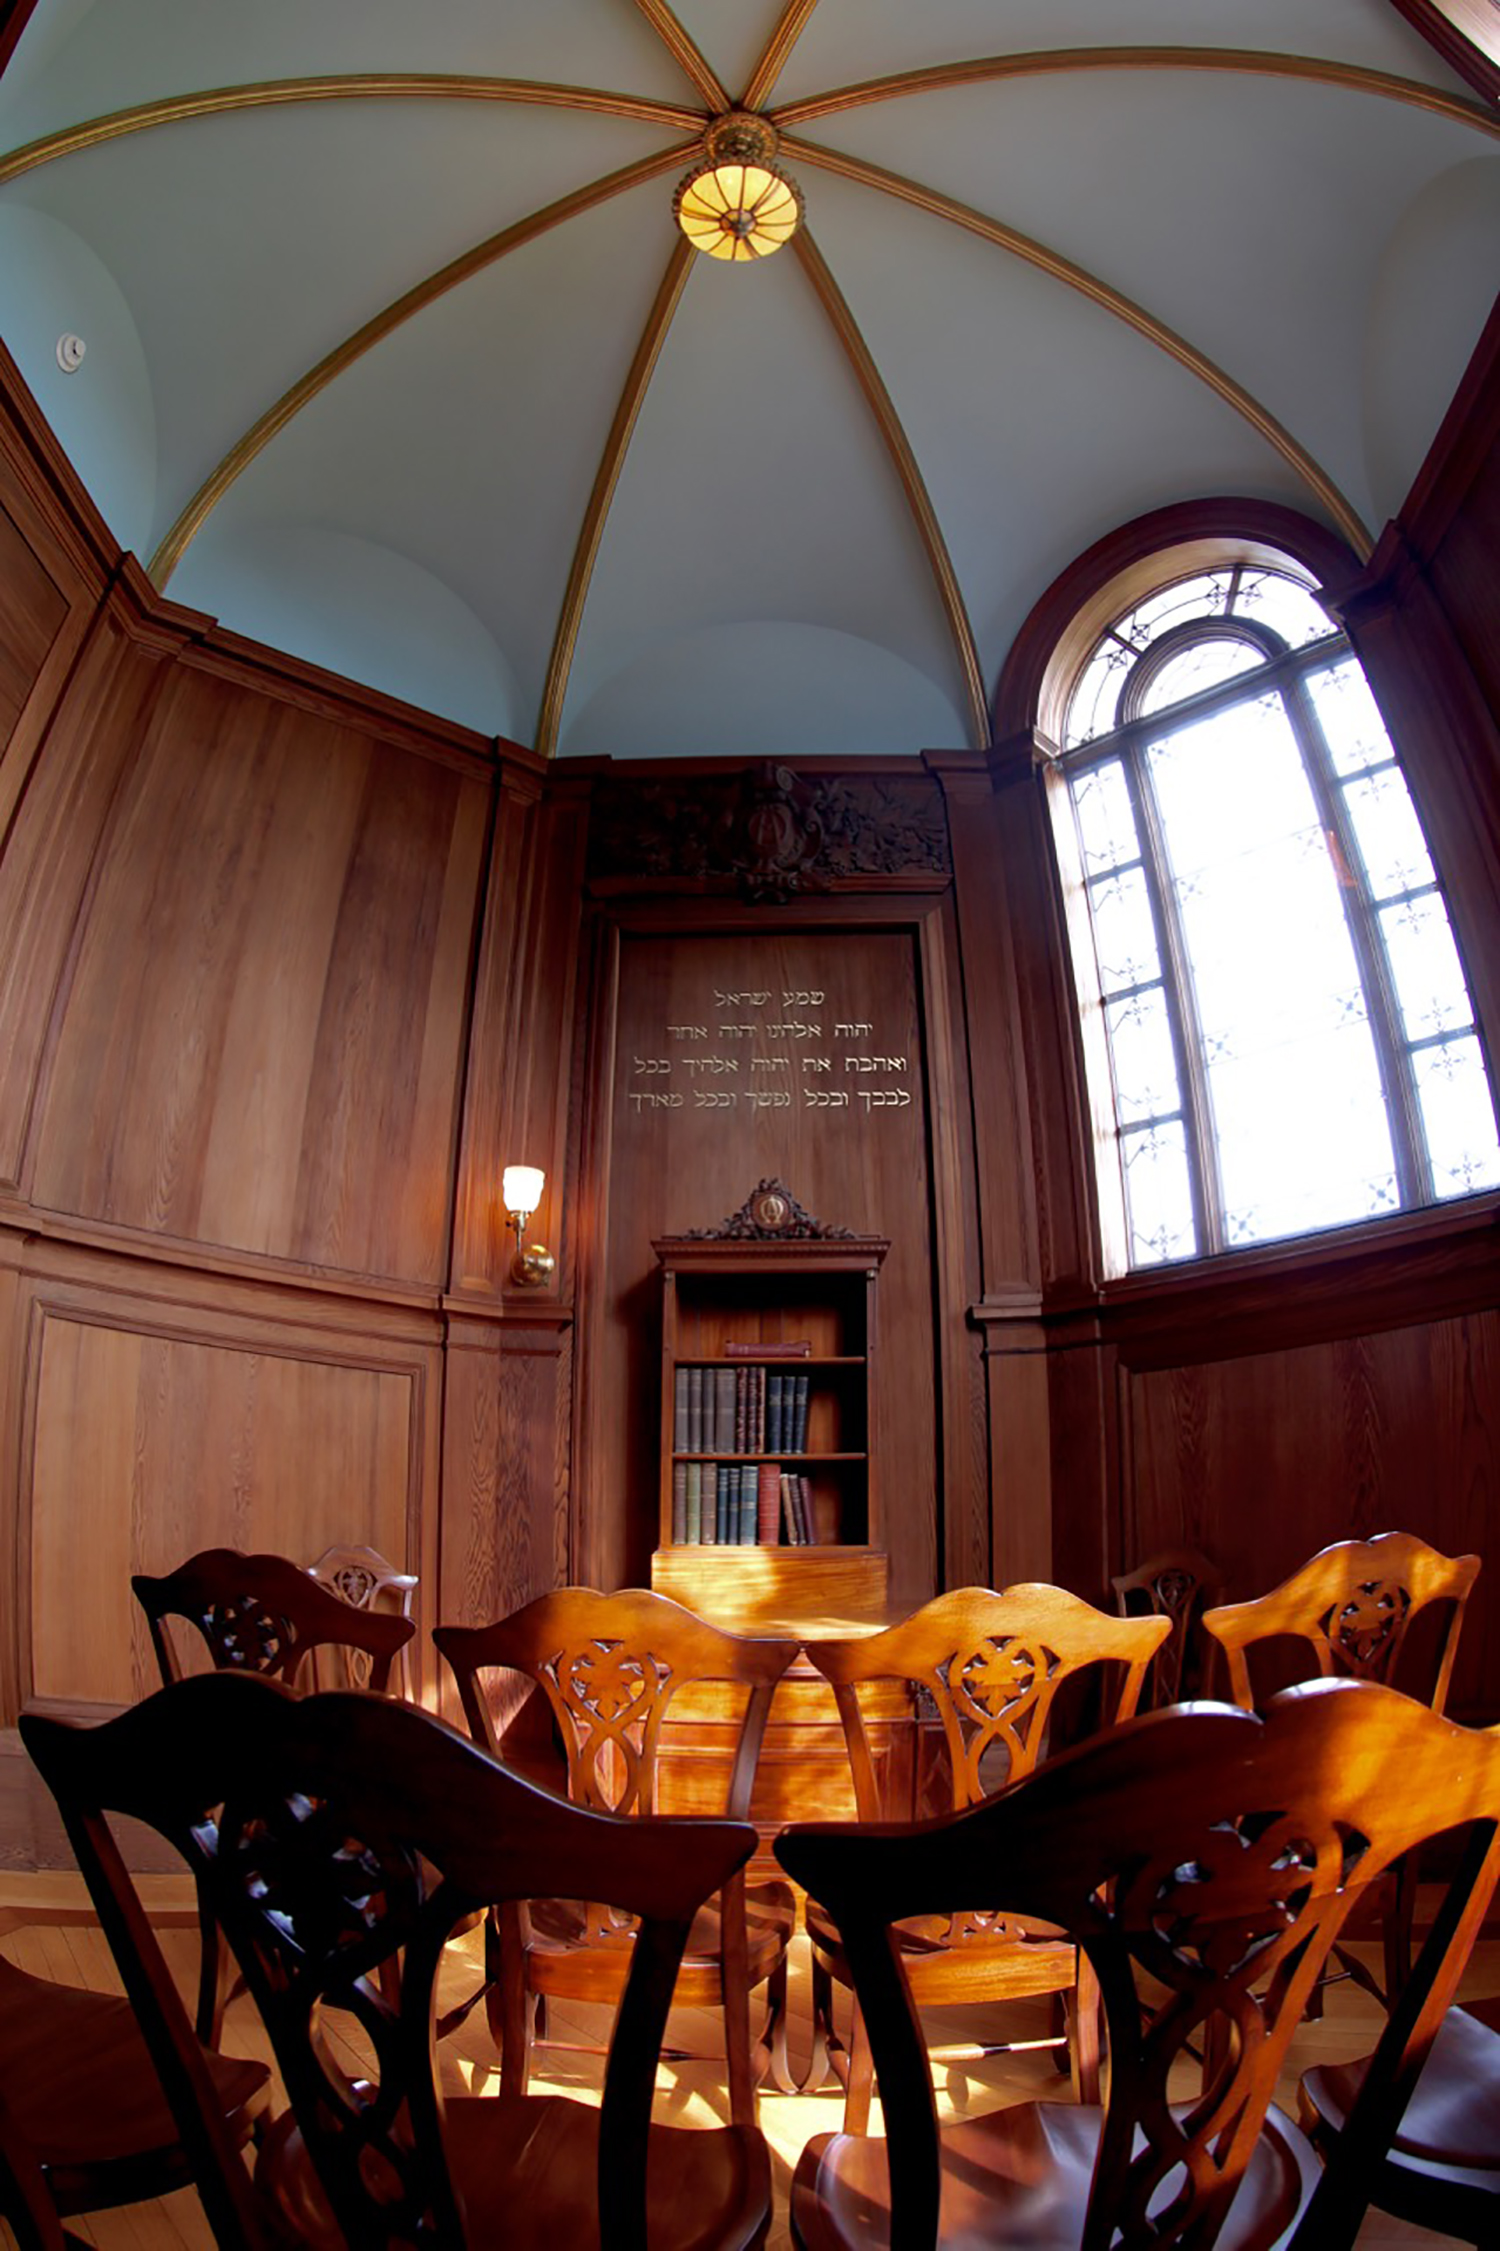 """Figure 3: The walls of Cairnwood's chapel are lined with California redwood, and the ceiling is finished in blue with ribs of gold. The home was dedicated on May 22, 1895. During the dedication service, the Bible and volumes of the theological works of Emanuel Swedenborg were placed in the chapel in a special mahogany cabinet. The Pitcairns had originally commissioned the cabinet for their home in Philadelphia, where it hung on the east wall of their parlor. (It was made in 1888 by G. Vollmer & Son, 1108 Chestnut Street, Philadelphia.) The wall is painted with an inscription in Hebrew in gilded letters:""""Hear, O Israel: The Lord our God, the Lord is one! You shall love the Lord your God with all your heart, with all your soul, and with all your might"""" (Deuteronomy 6:4–5)."""